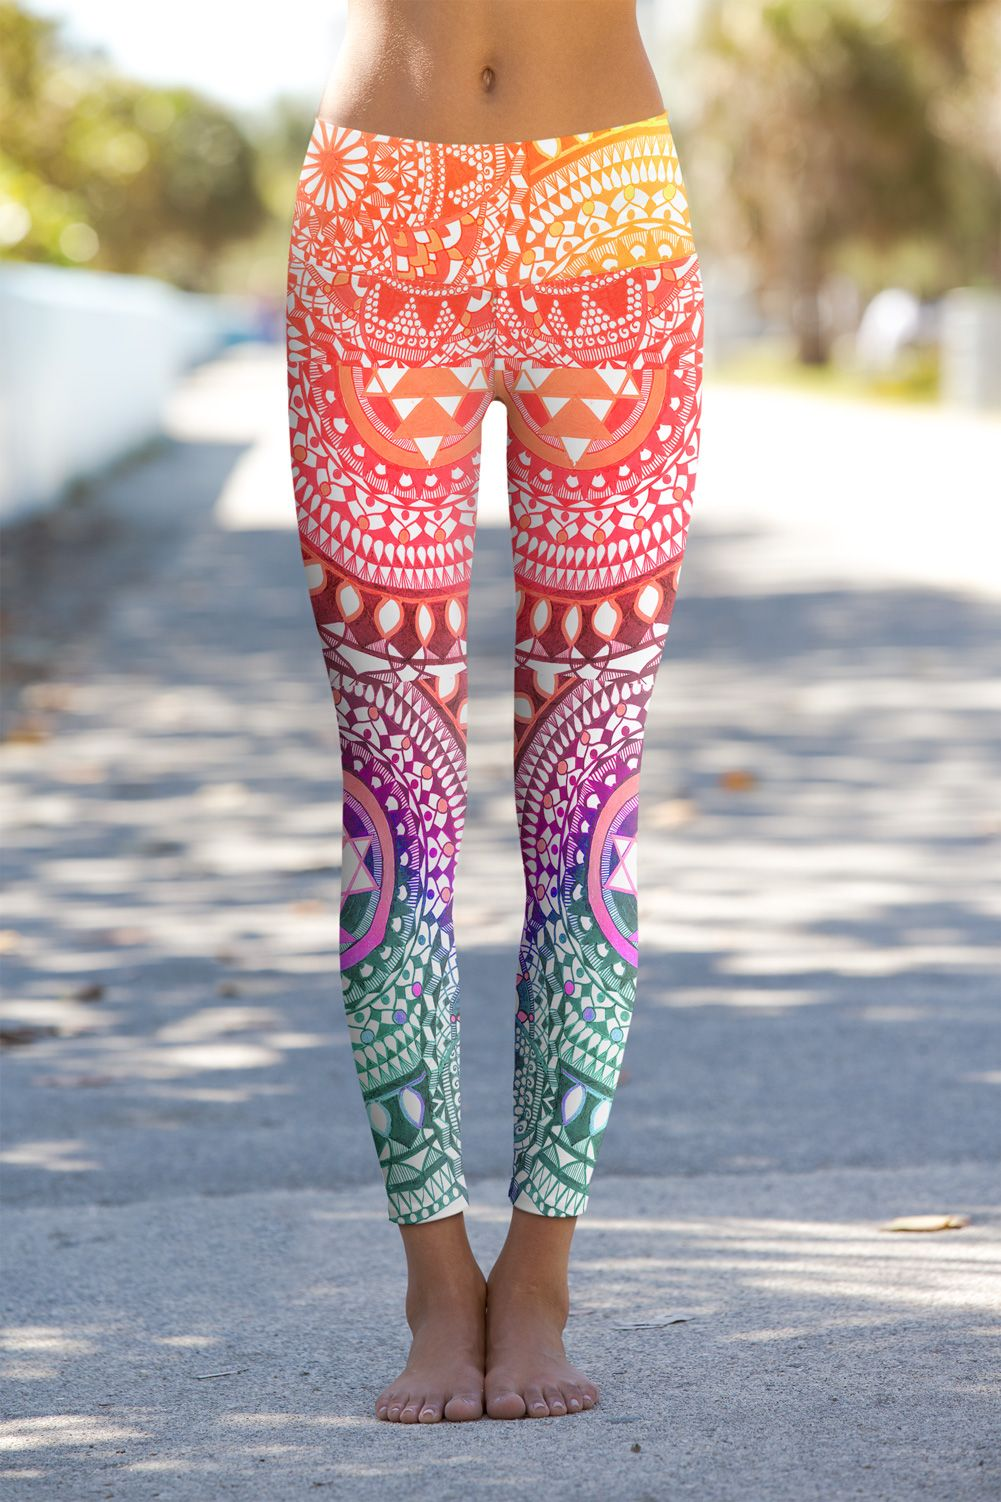 8ba3856c9b $29.90 Chakra Flowers yoga leggings with a vibrant pattern and colors to  infuse your spirit with vibrant, positive energy. Positive vibes made into  a ...